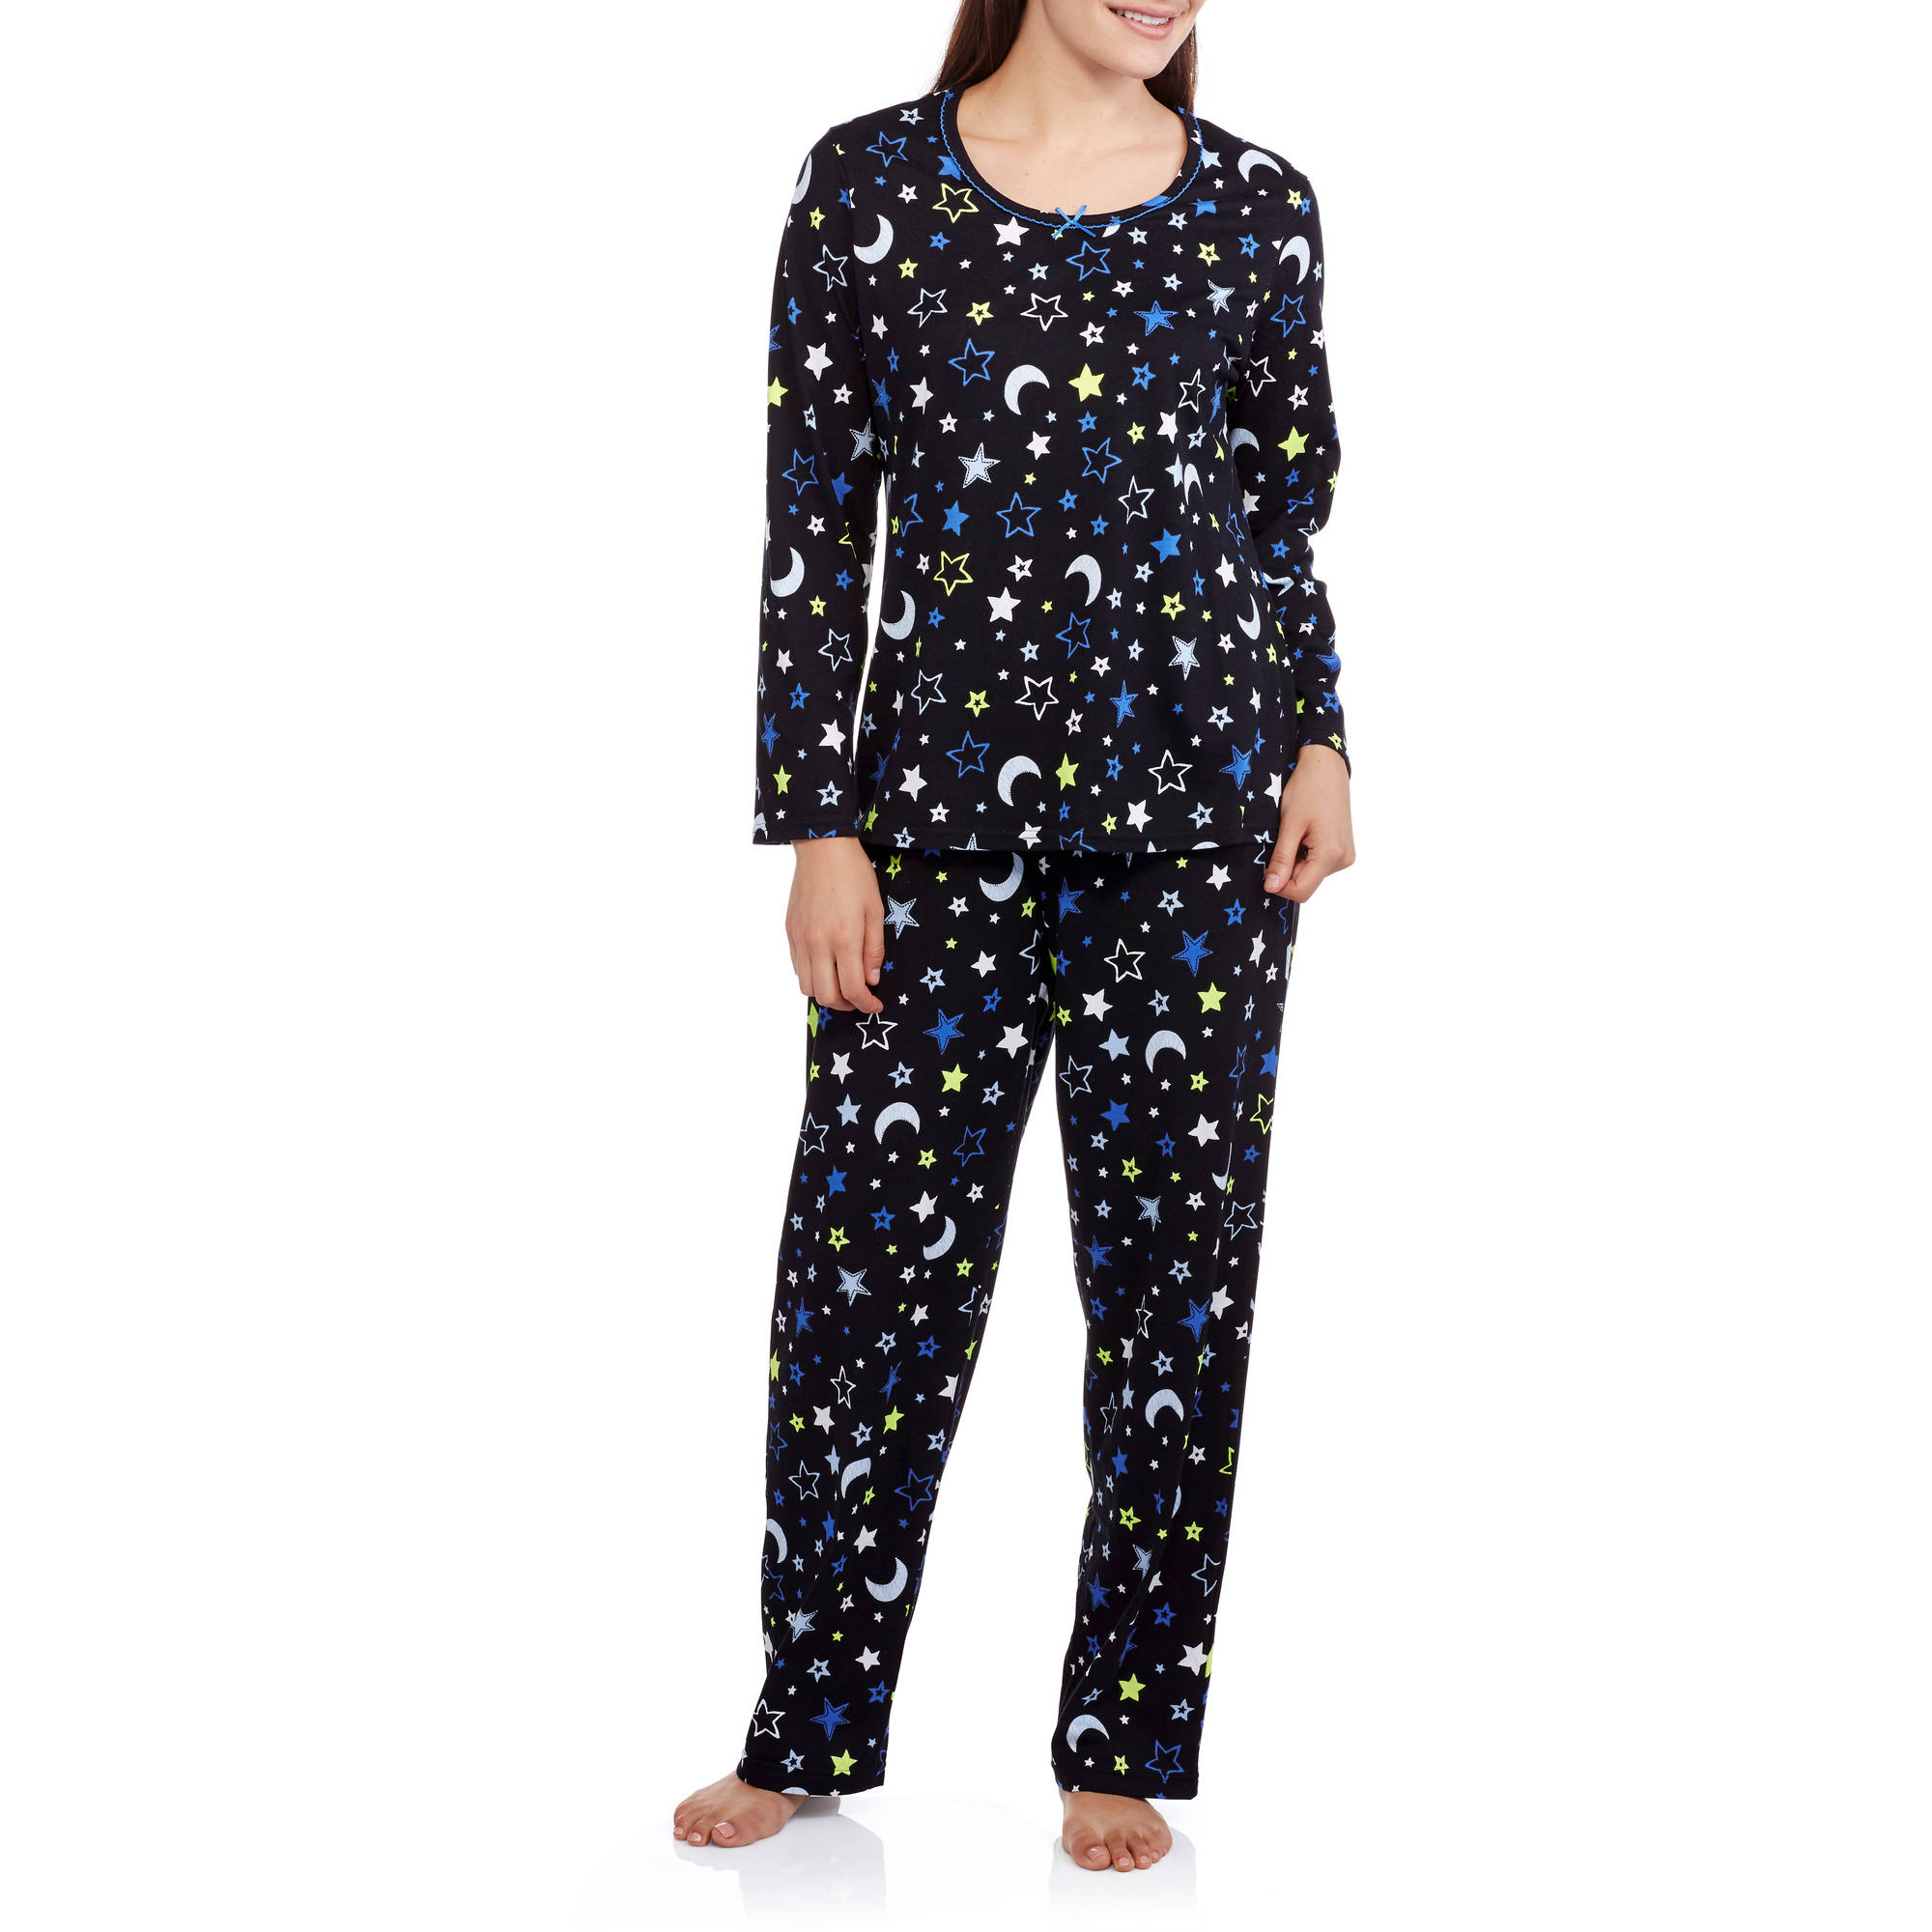 Secret Treasures Women's Long Sleeve Knit Pajama Top and Pant 2 Piece Sleepwear Set (Sizes S-3X)